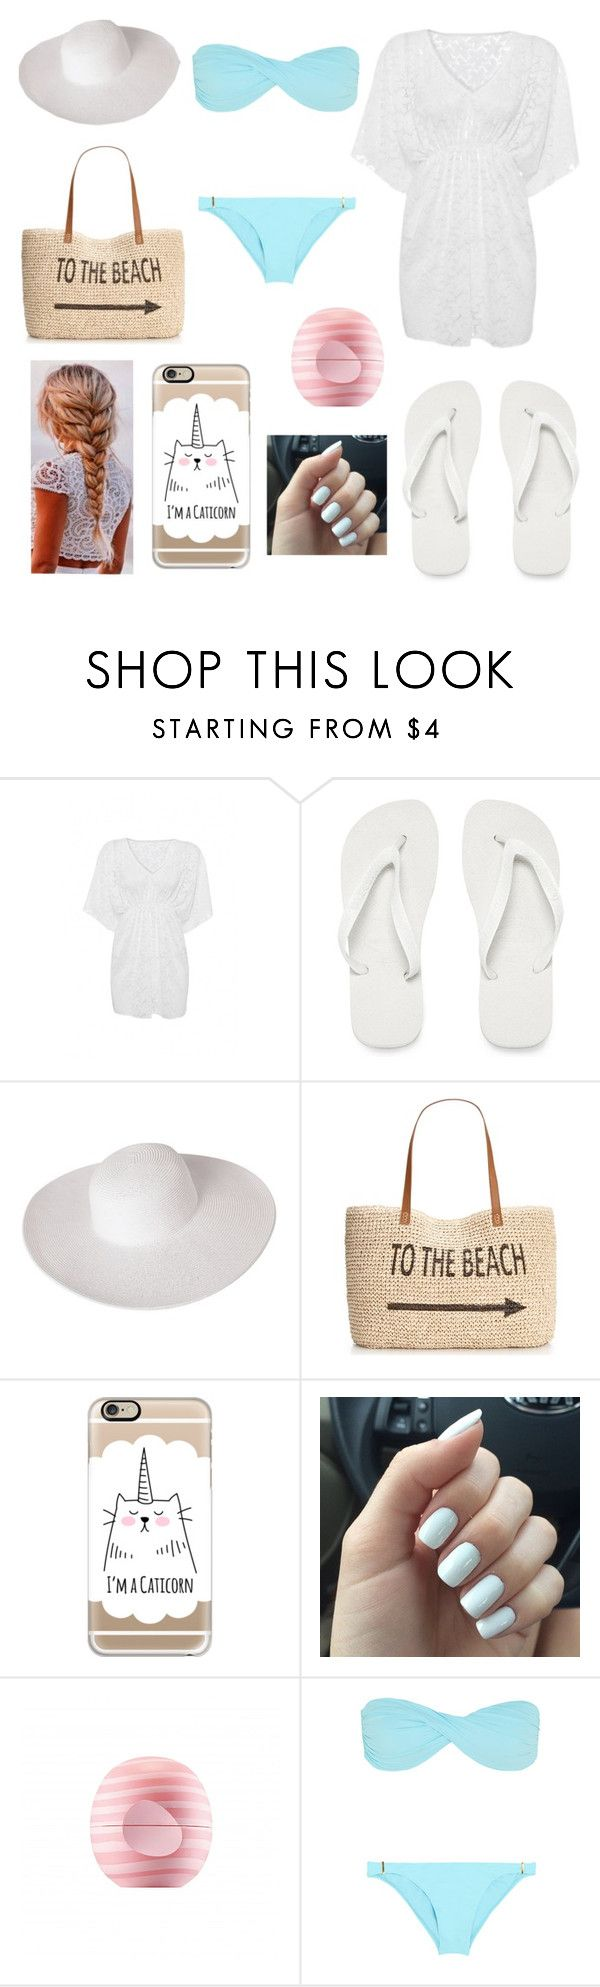 """""""Pool party"""" by laylaskye ❤ liked on Polyvore featuring Havaianas, Dorfman Pacific, Style & Co., Casetify, Eos and Melissa Odabash"""